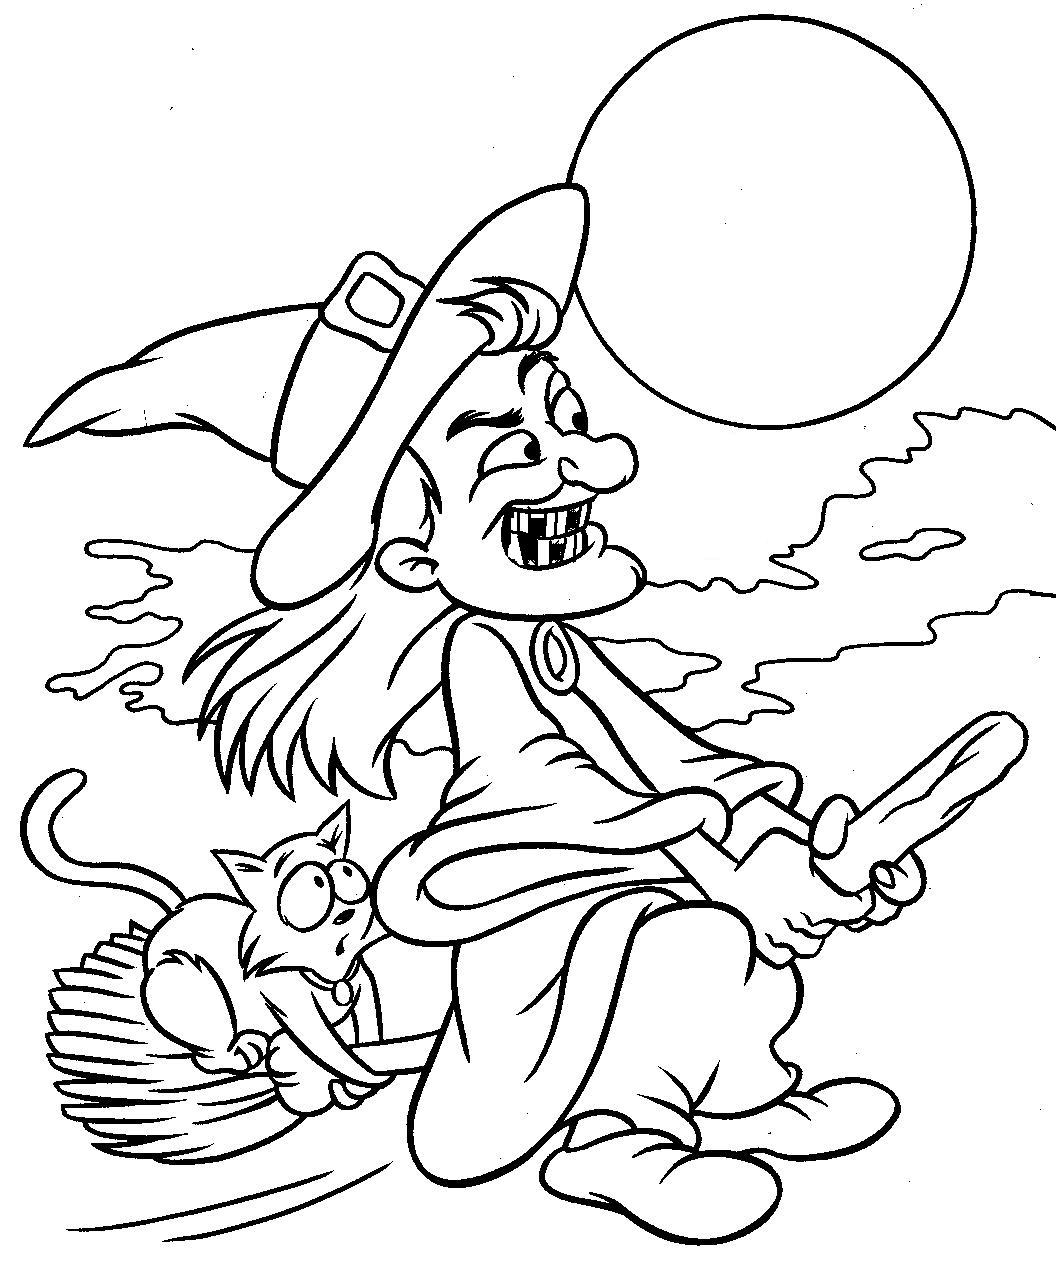 Kindergarten halloween colouring sheets - Kindergarten Halloween Colouring Sheets Witch House Coloring Pages Halloween Witch Home